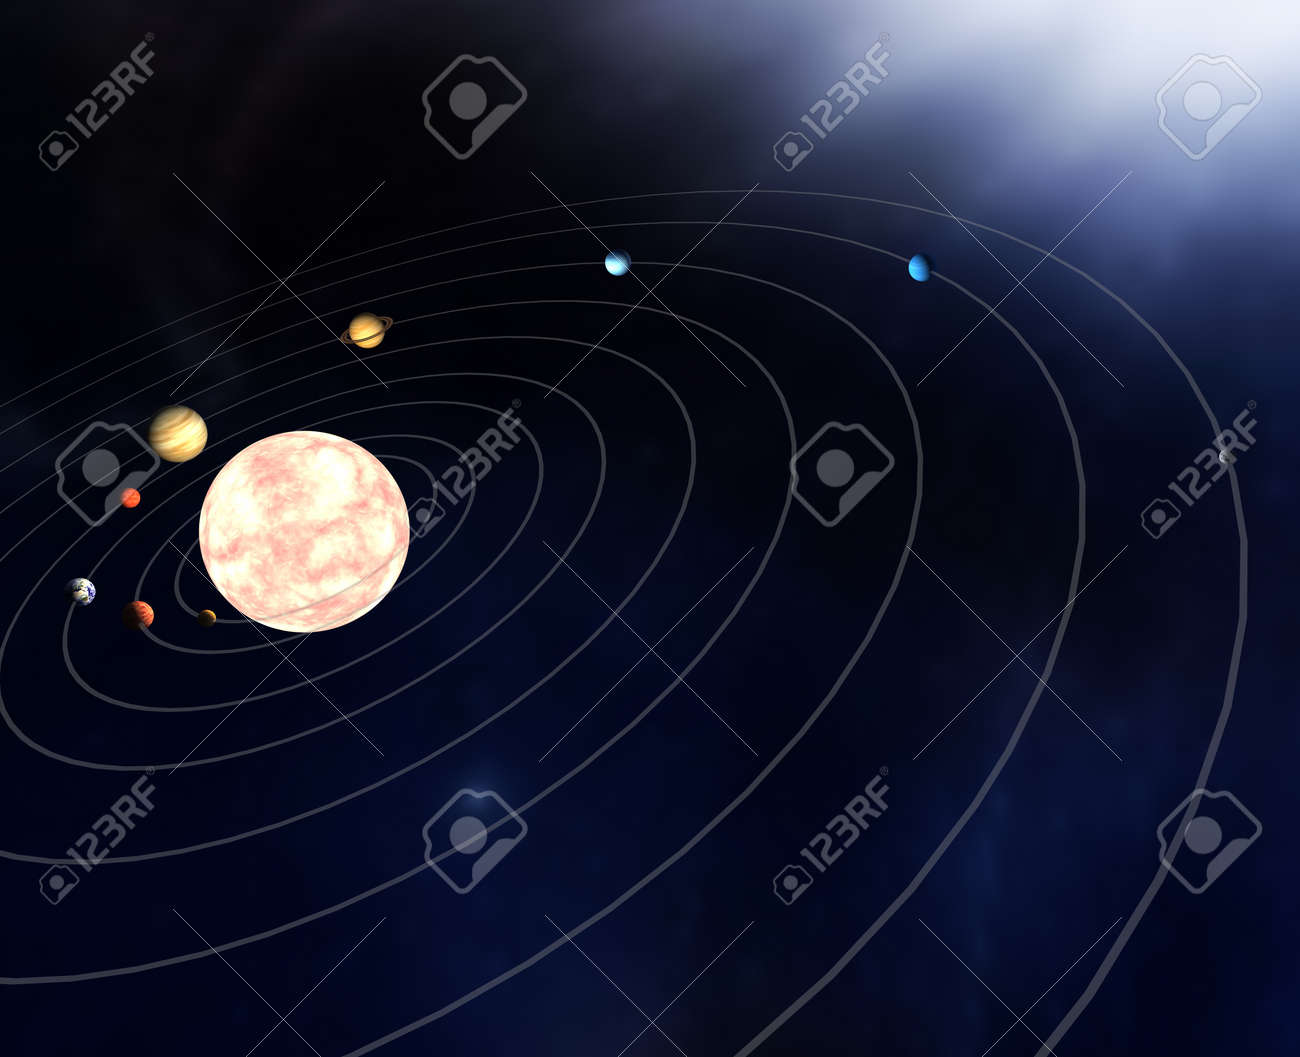 Delighted Bulldogsecurity.com Wiring Huge Viper Remote Start Wiring Solid Dimarzio Switch Ibanez Bass Pickups Young Remote Start Wiring Yellow1 Humbucker 1 Volume Diagram Of The Planets In The Solar System Stock Photo, Picture ..